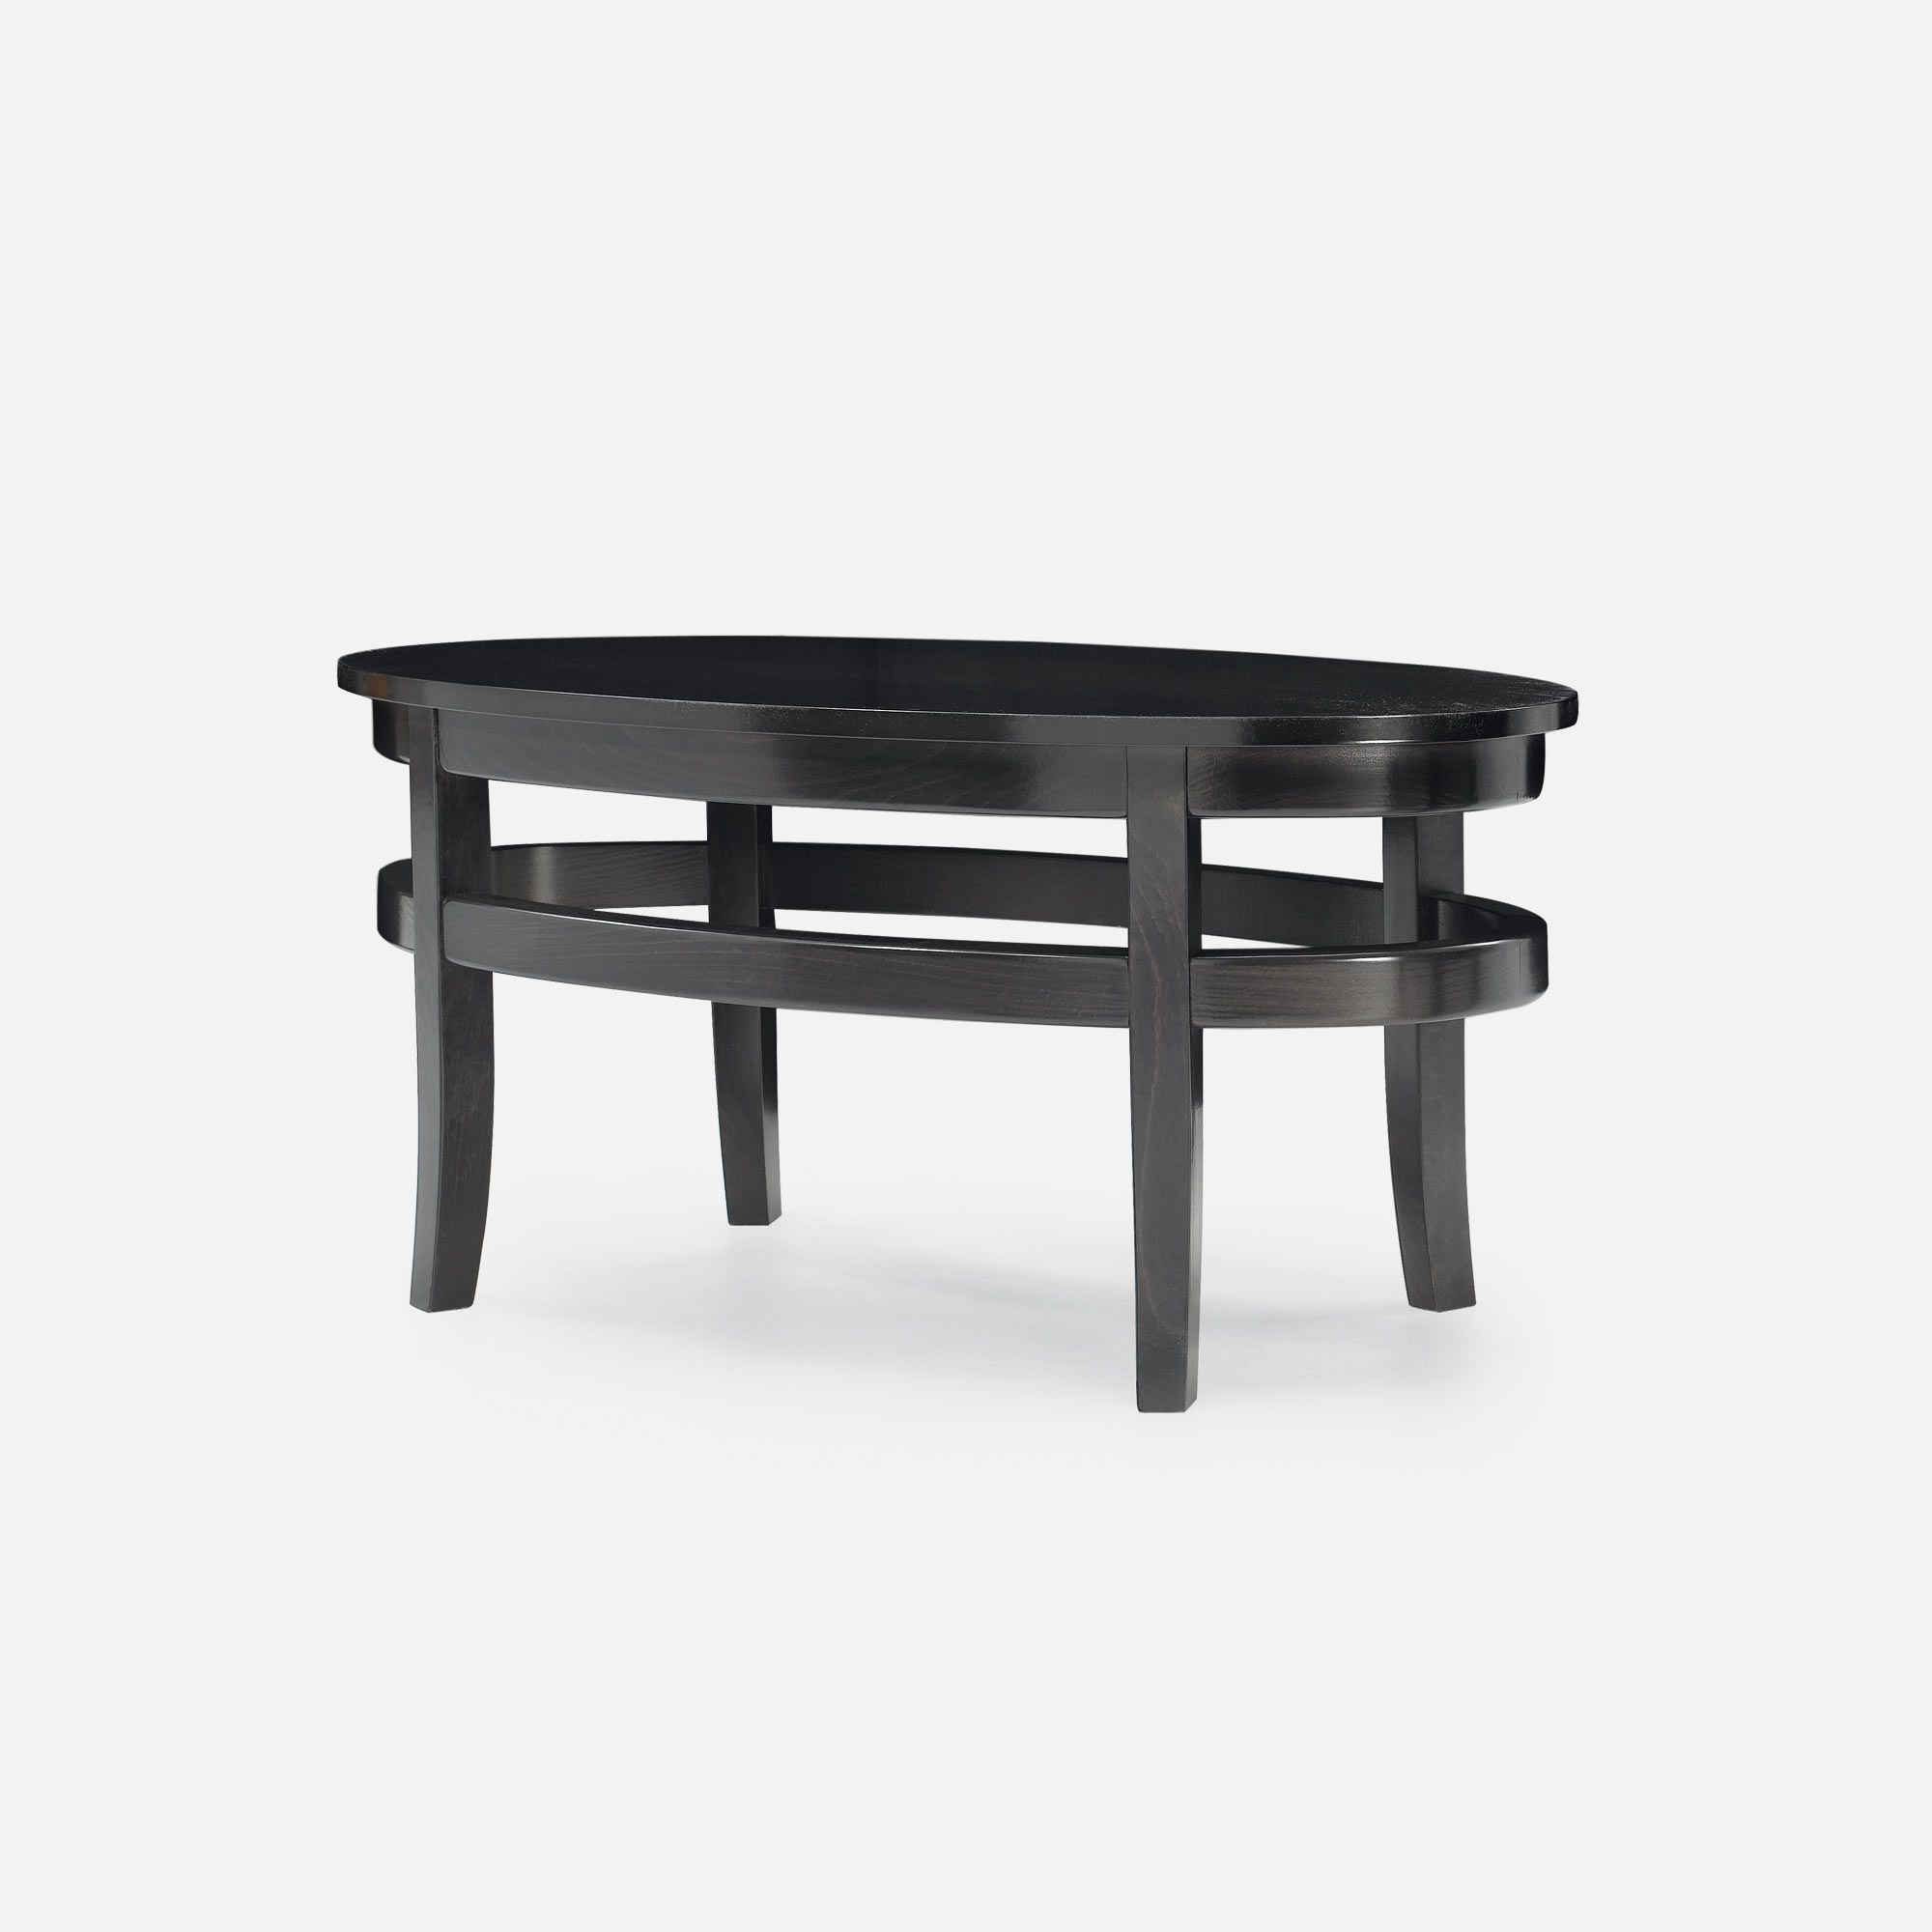 table basse 50 cm hauteur table basse hauteur cm. Black Bedroom Furniture Sets. Home Design Ideas